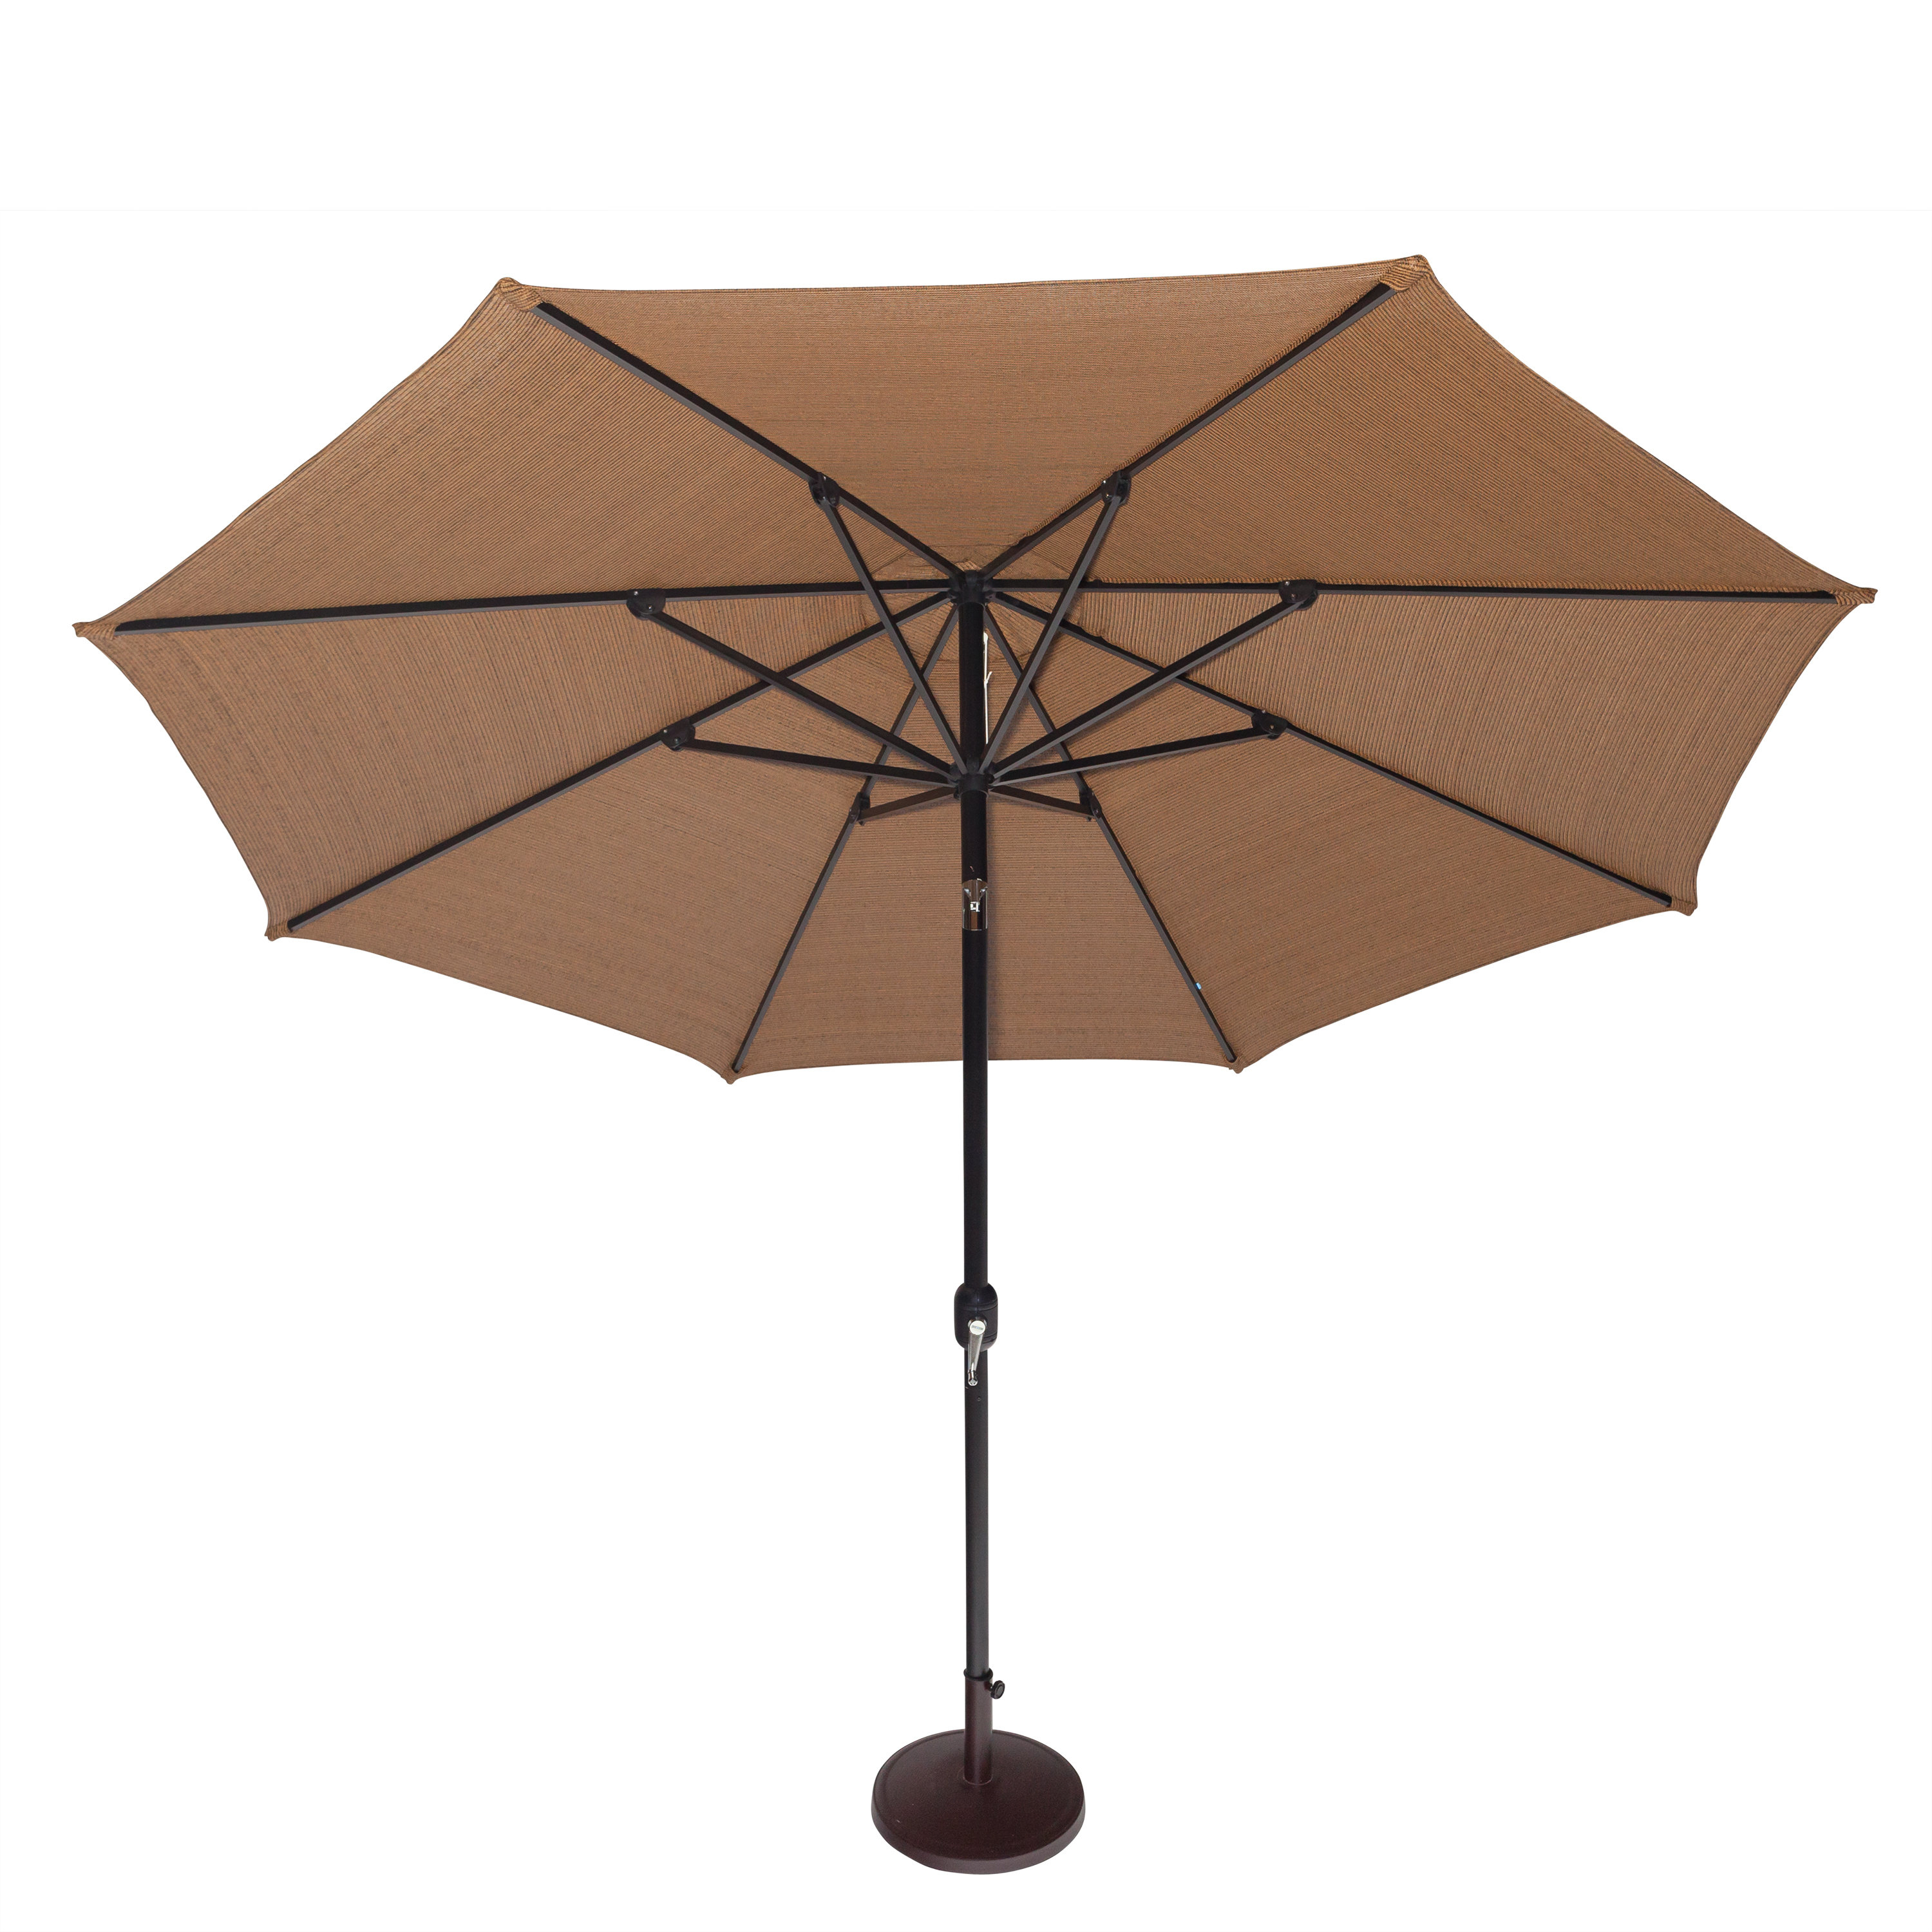 Wayfair Pertaining To Most Up To Date Markley Market Beach Umbrellas (View 18 of 20)